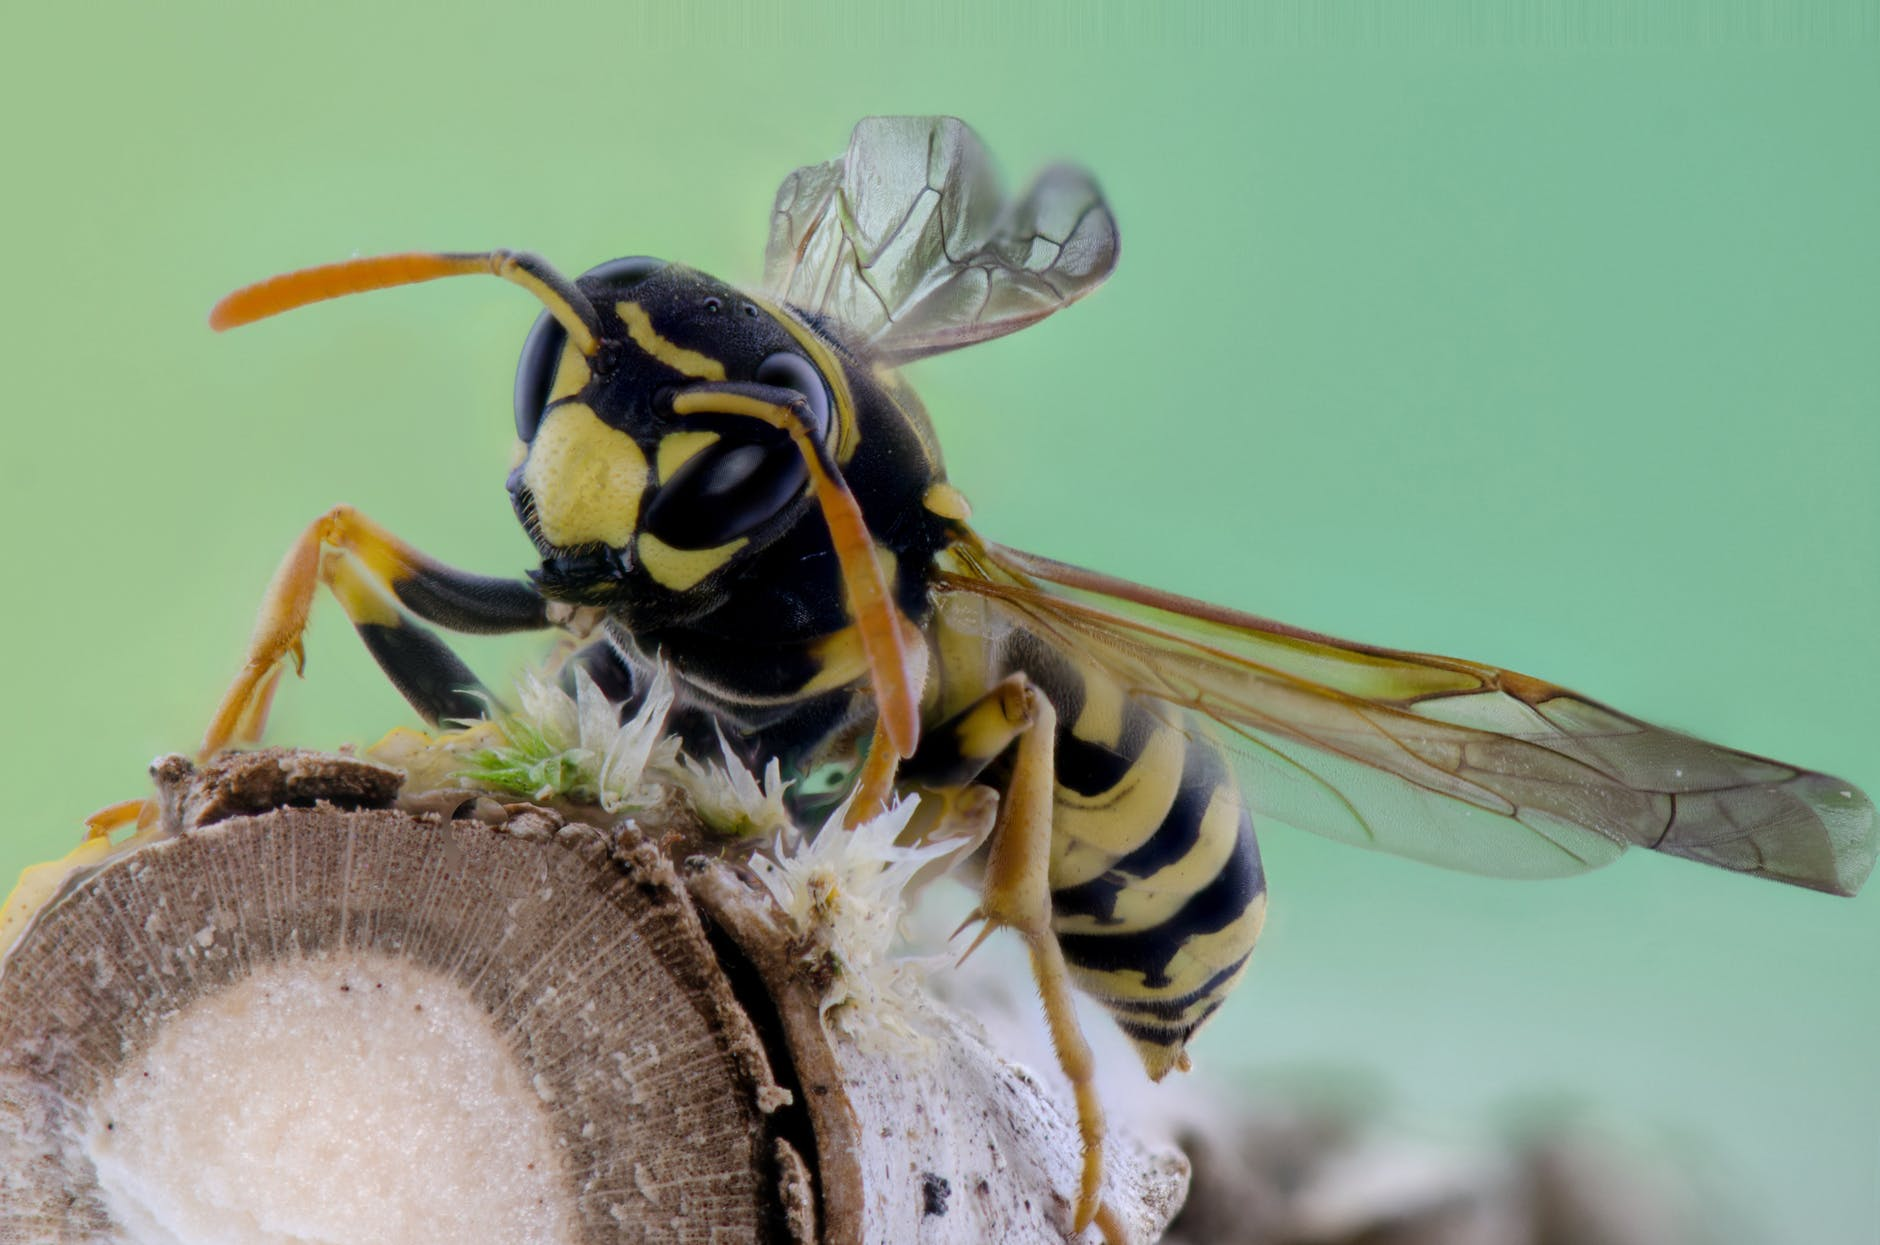 Top 5 Best Wasp Sprays to Buy Now (2019